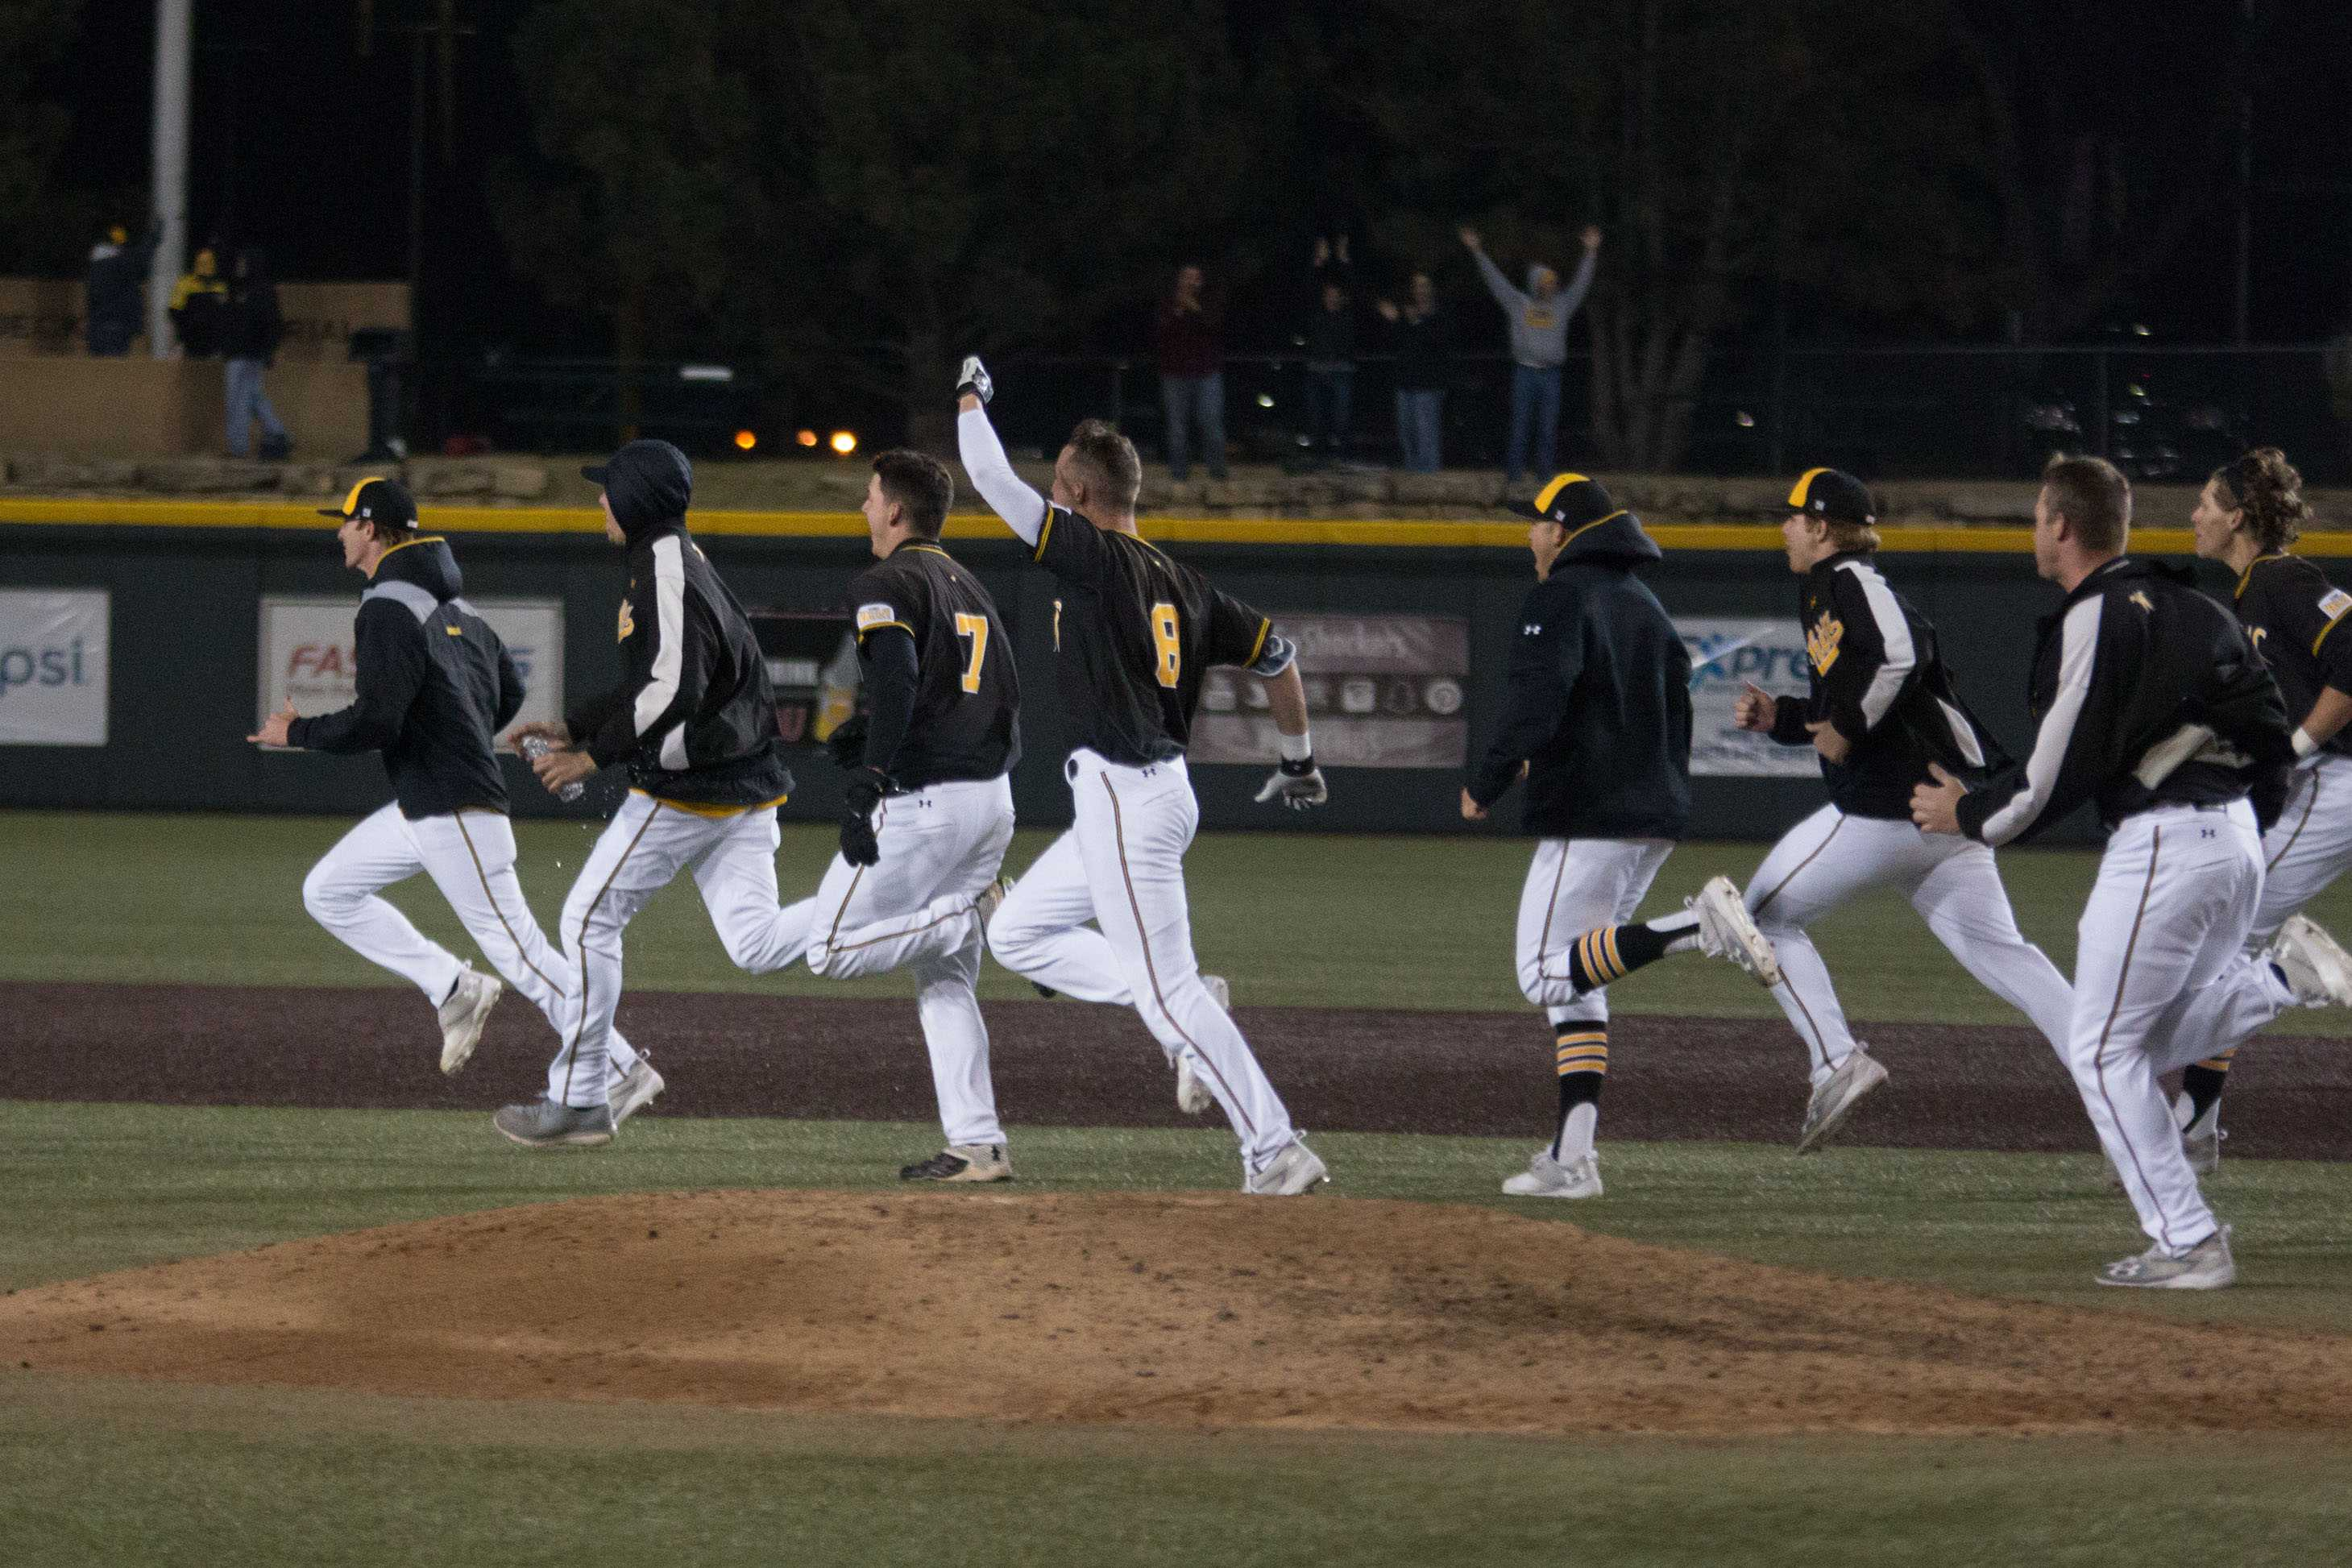 Shockers rush out onto the field to celebrate their victory against Valparaiso Friday evening.